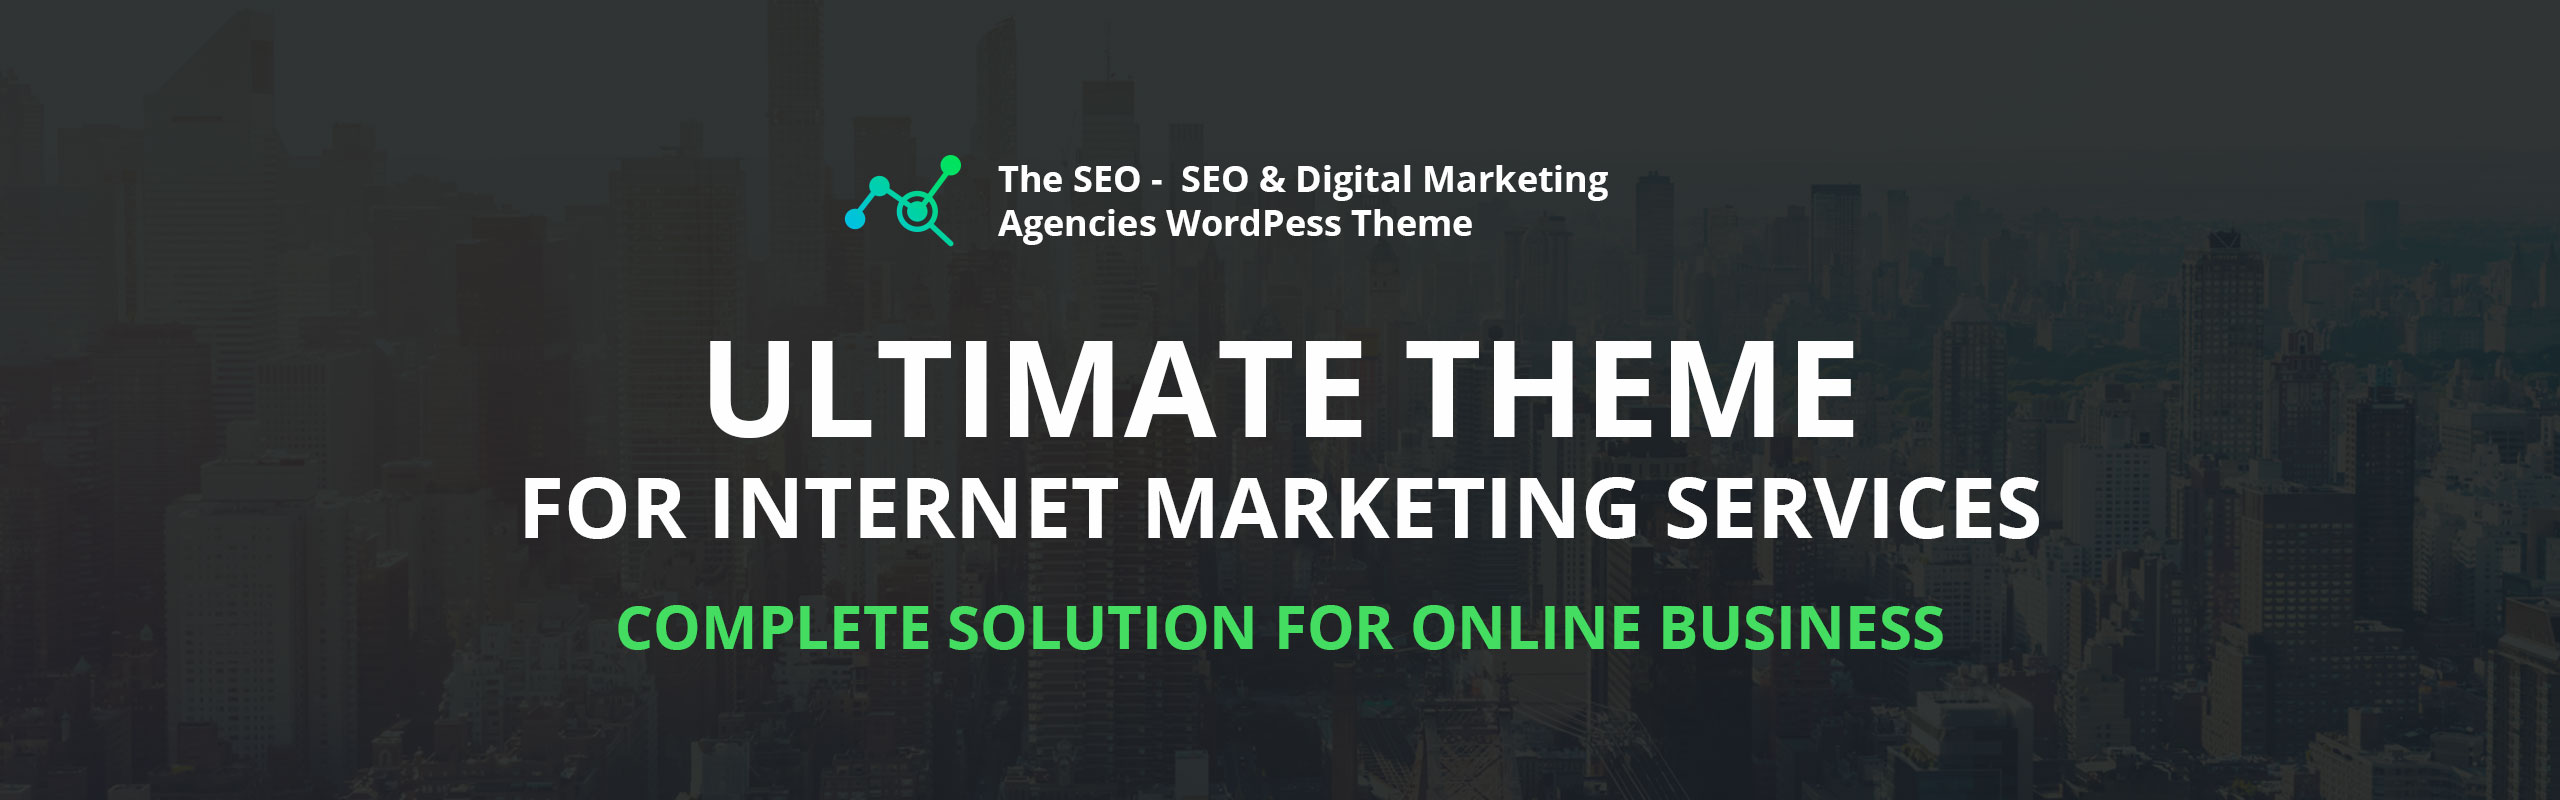 THE SEO WordPess Theme for Digital Marketing Agencies